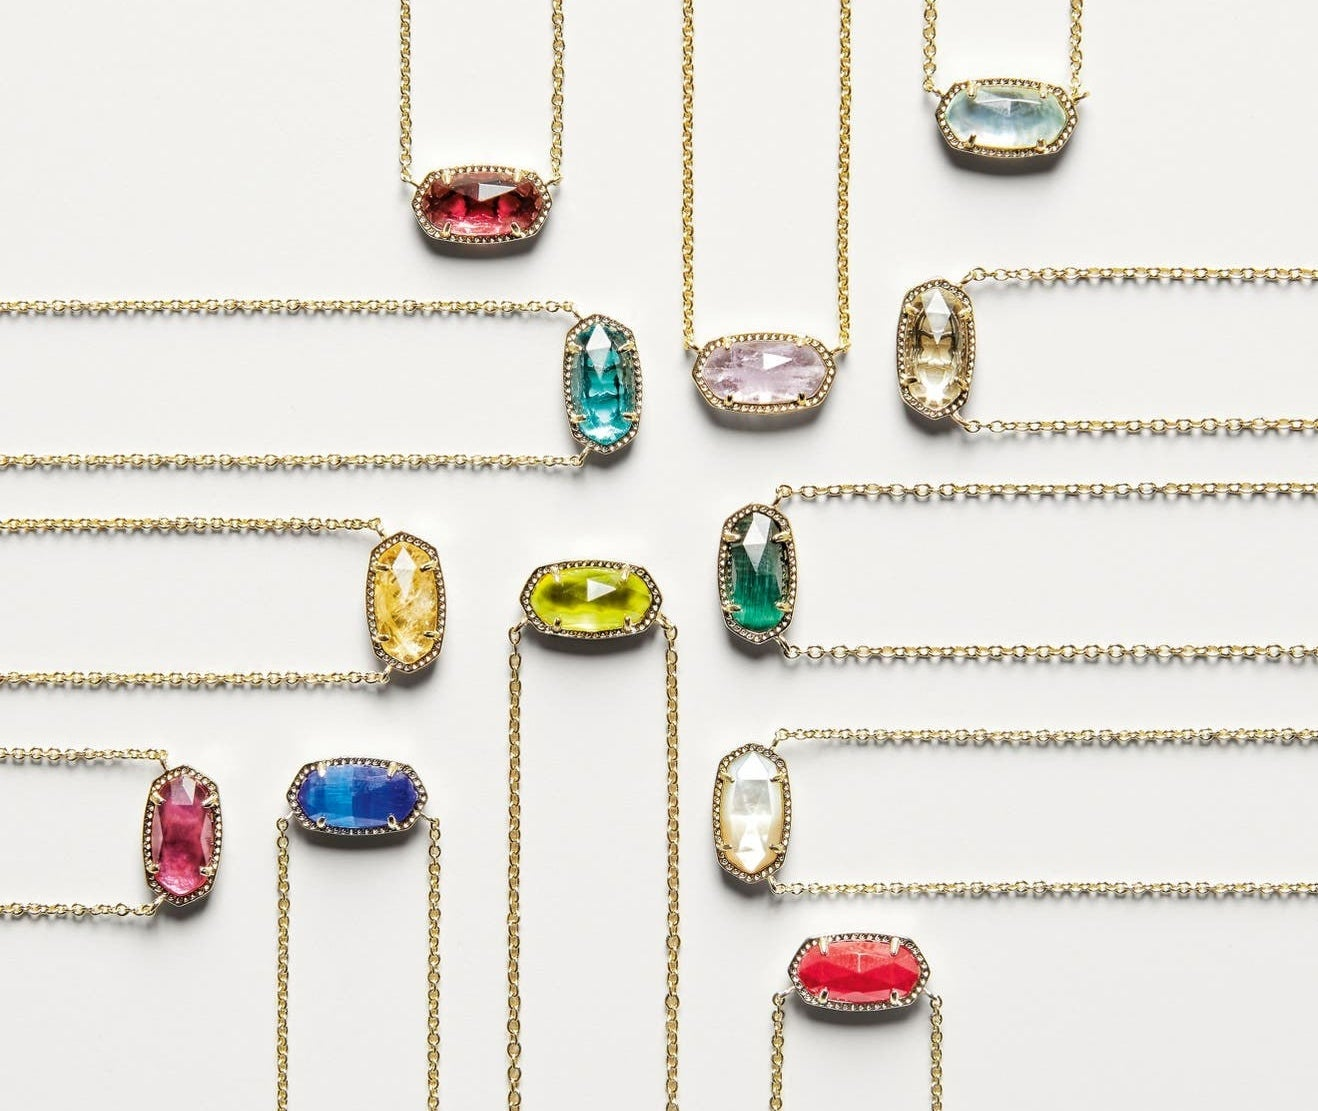 Twelves oval-shaped pendents in different-colored stones on cold chains